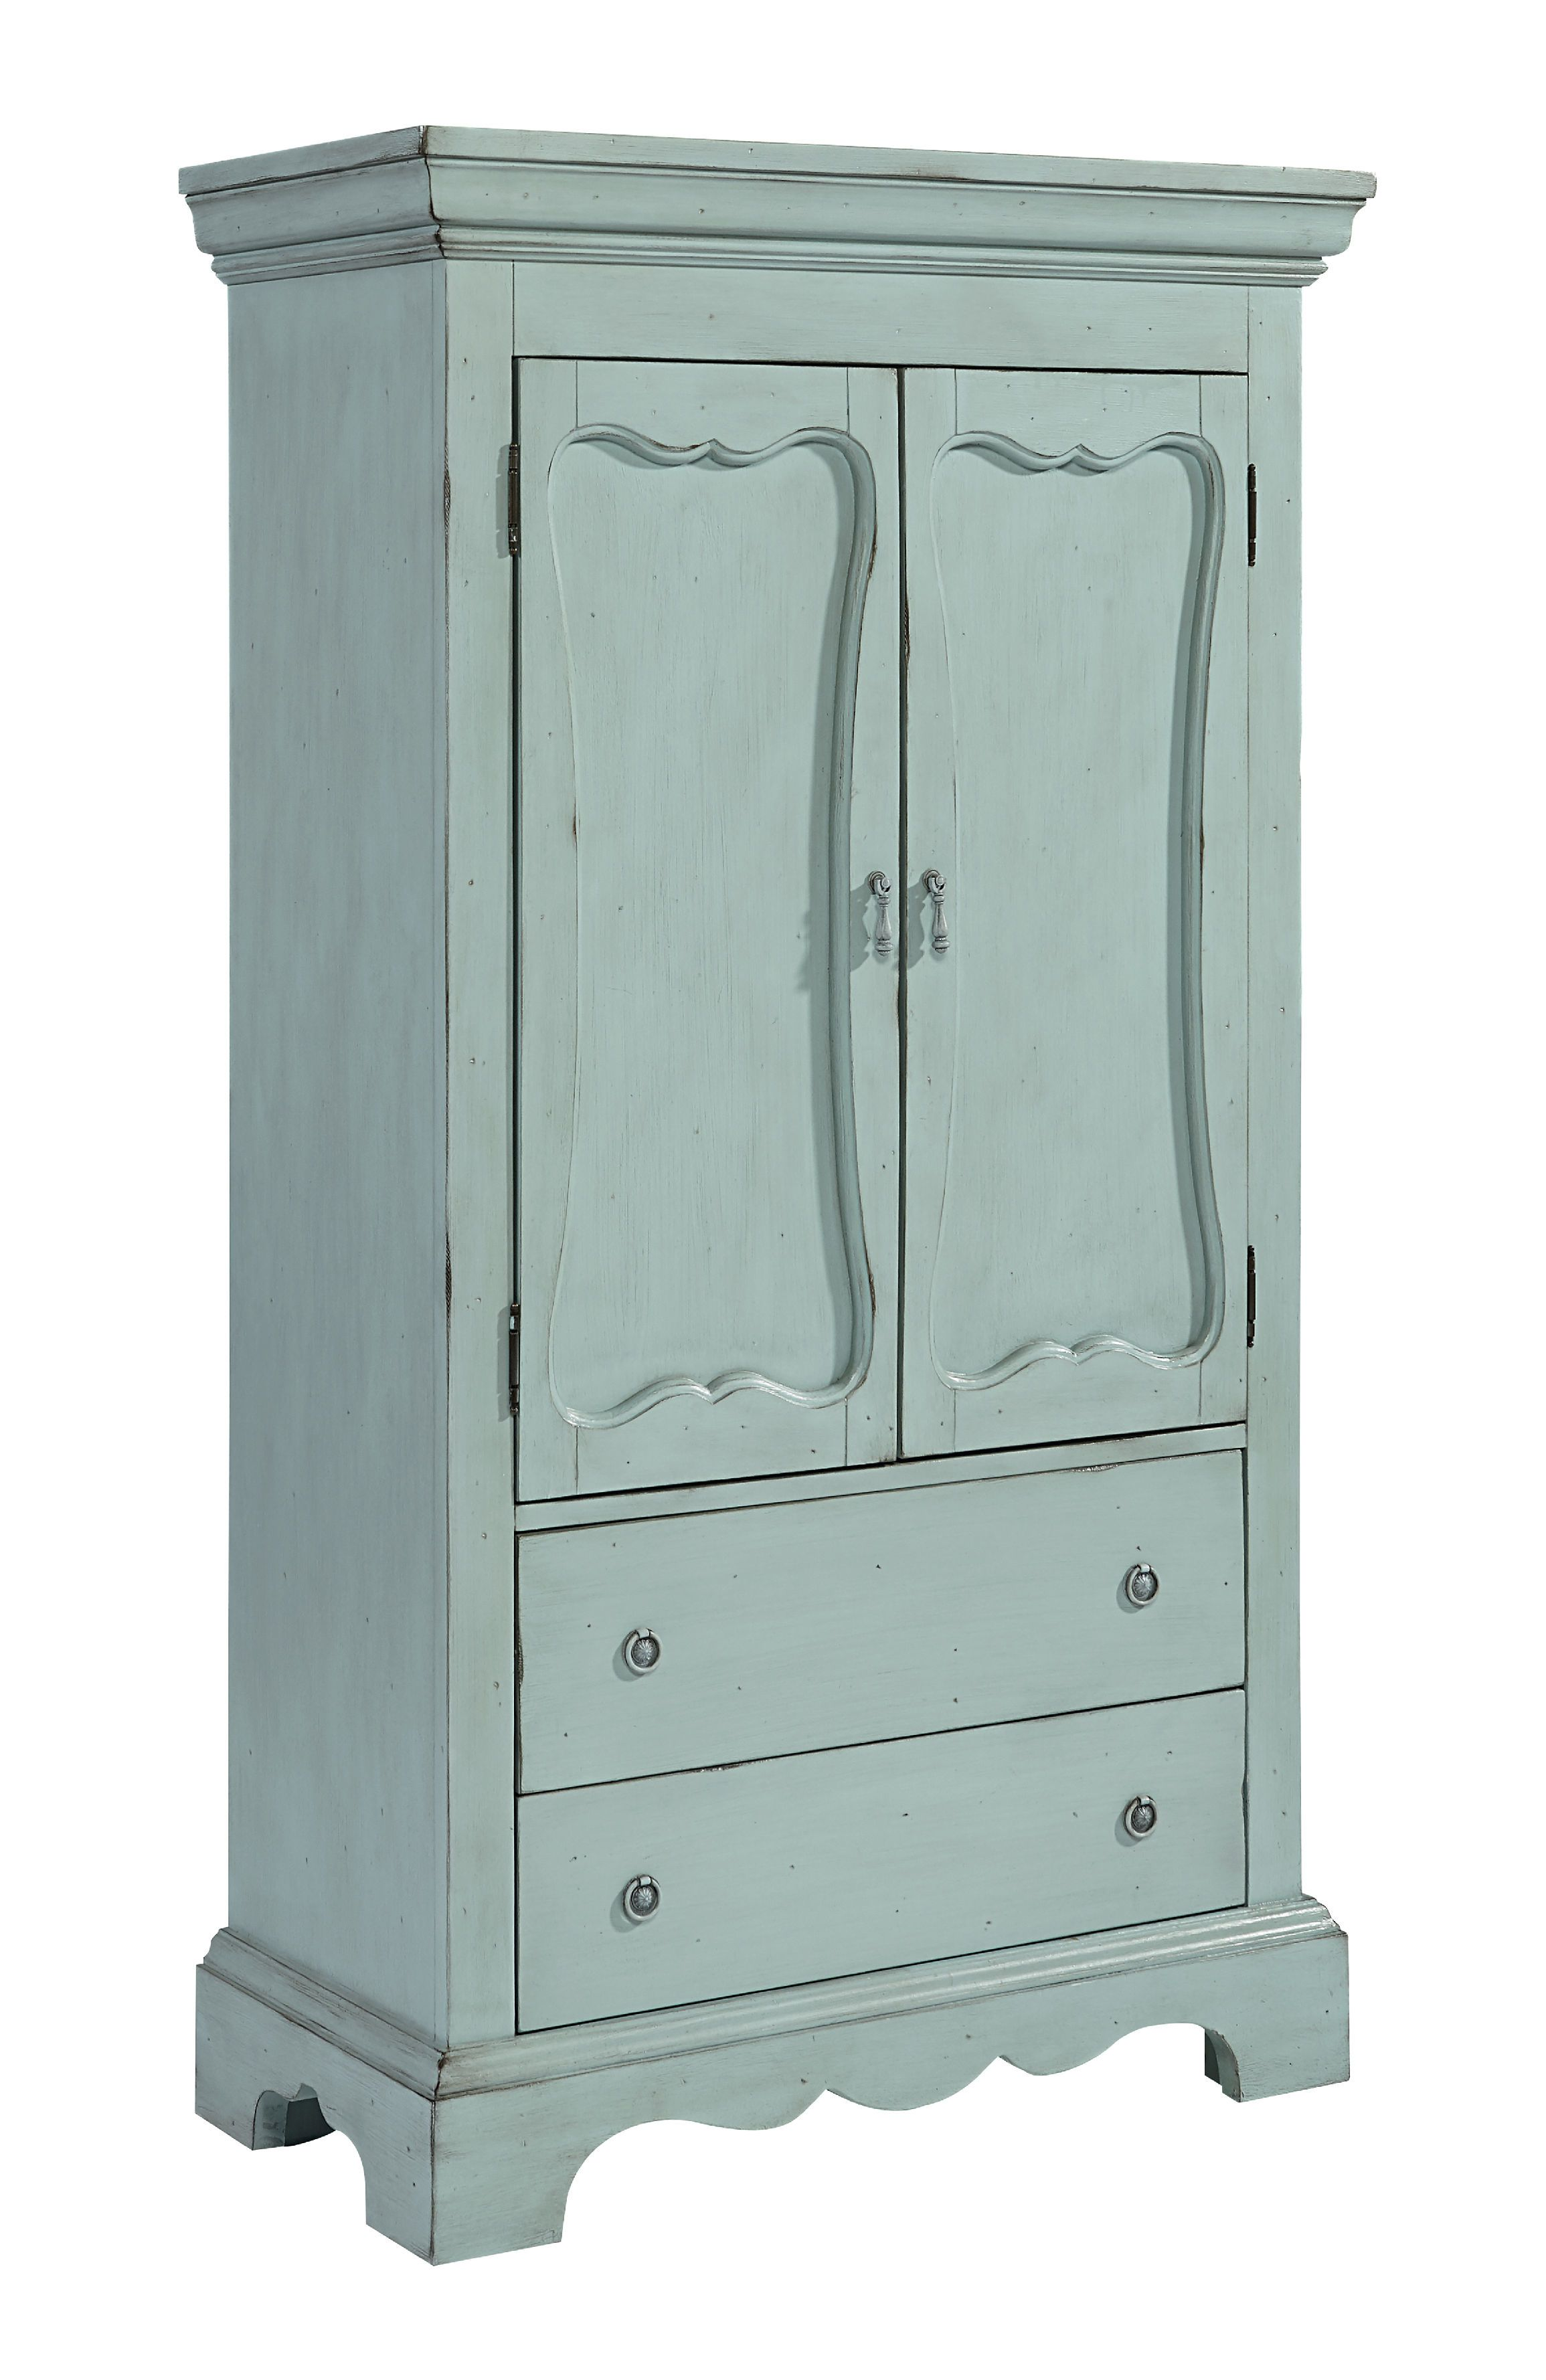 If You Need Great Storage, Then You Will Find It In Magnolia Homeu0027s Double  Door French Inspired Cameo Armoire. Styled After A Grand Old Piece, ...